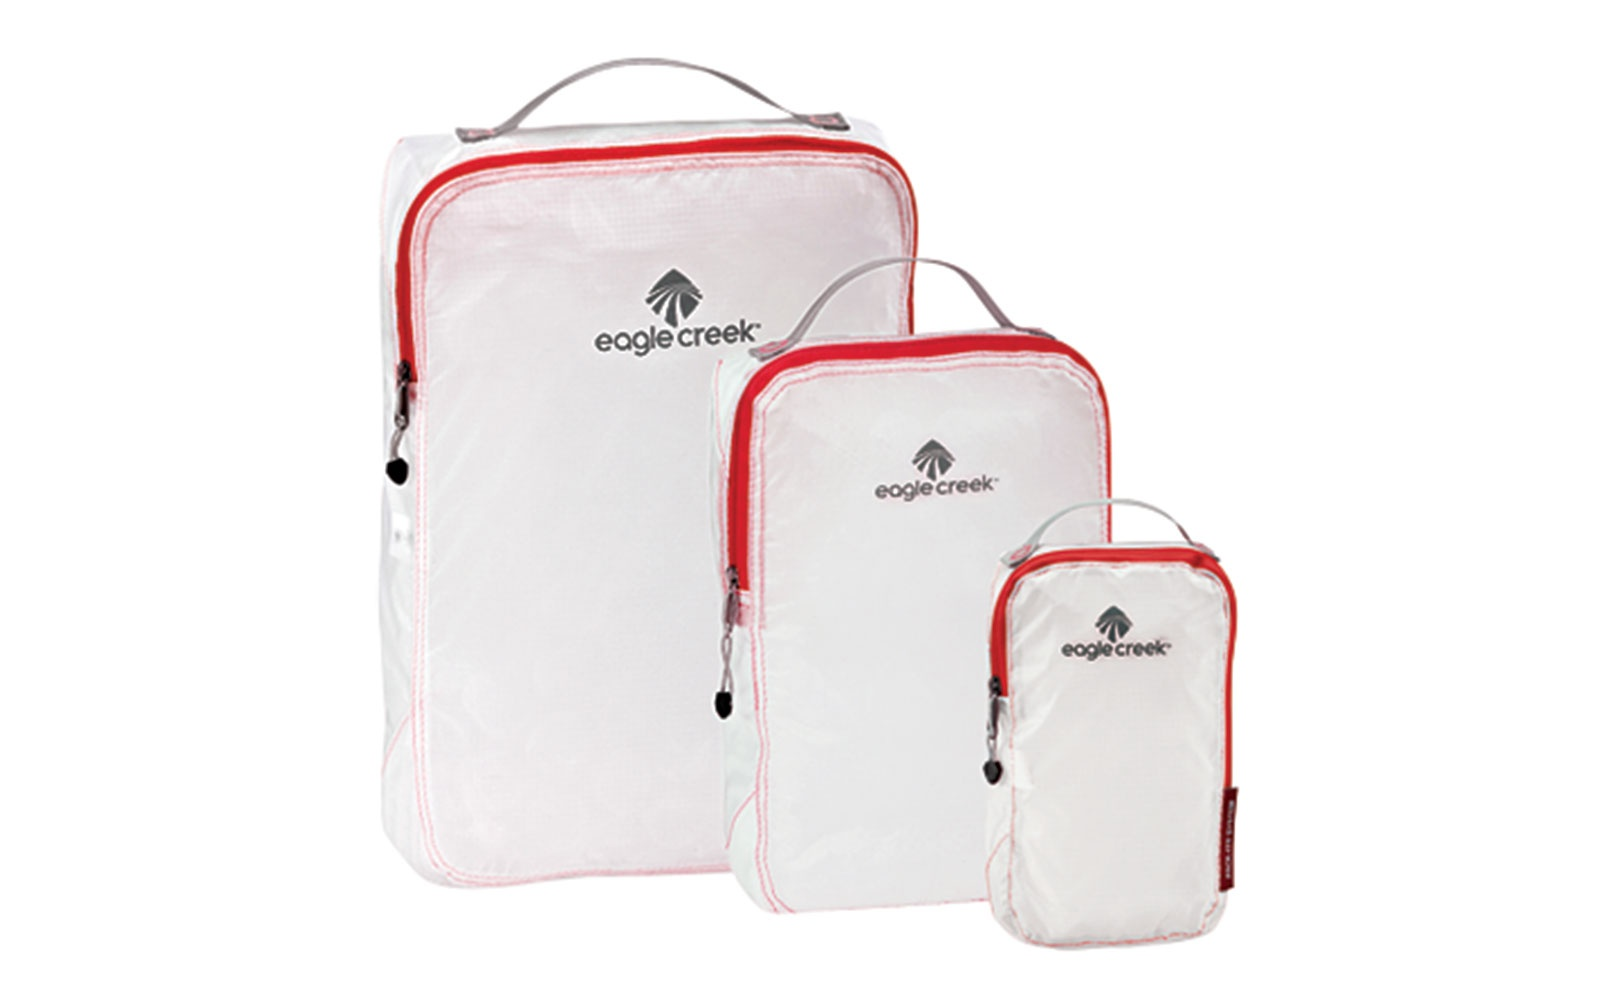 Eagle Creek suitcase packing bags